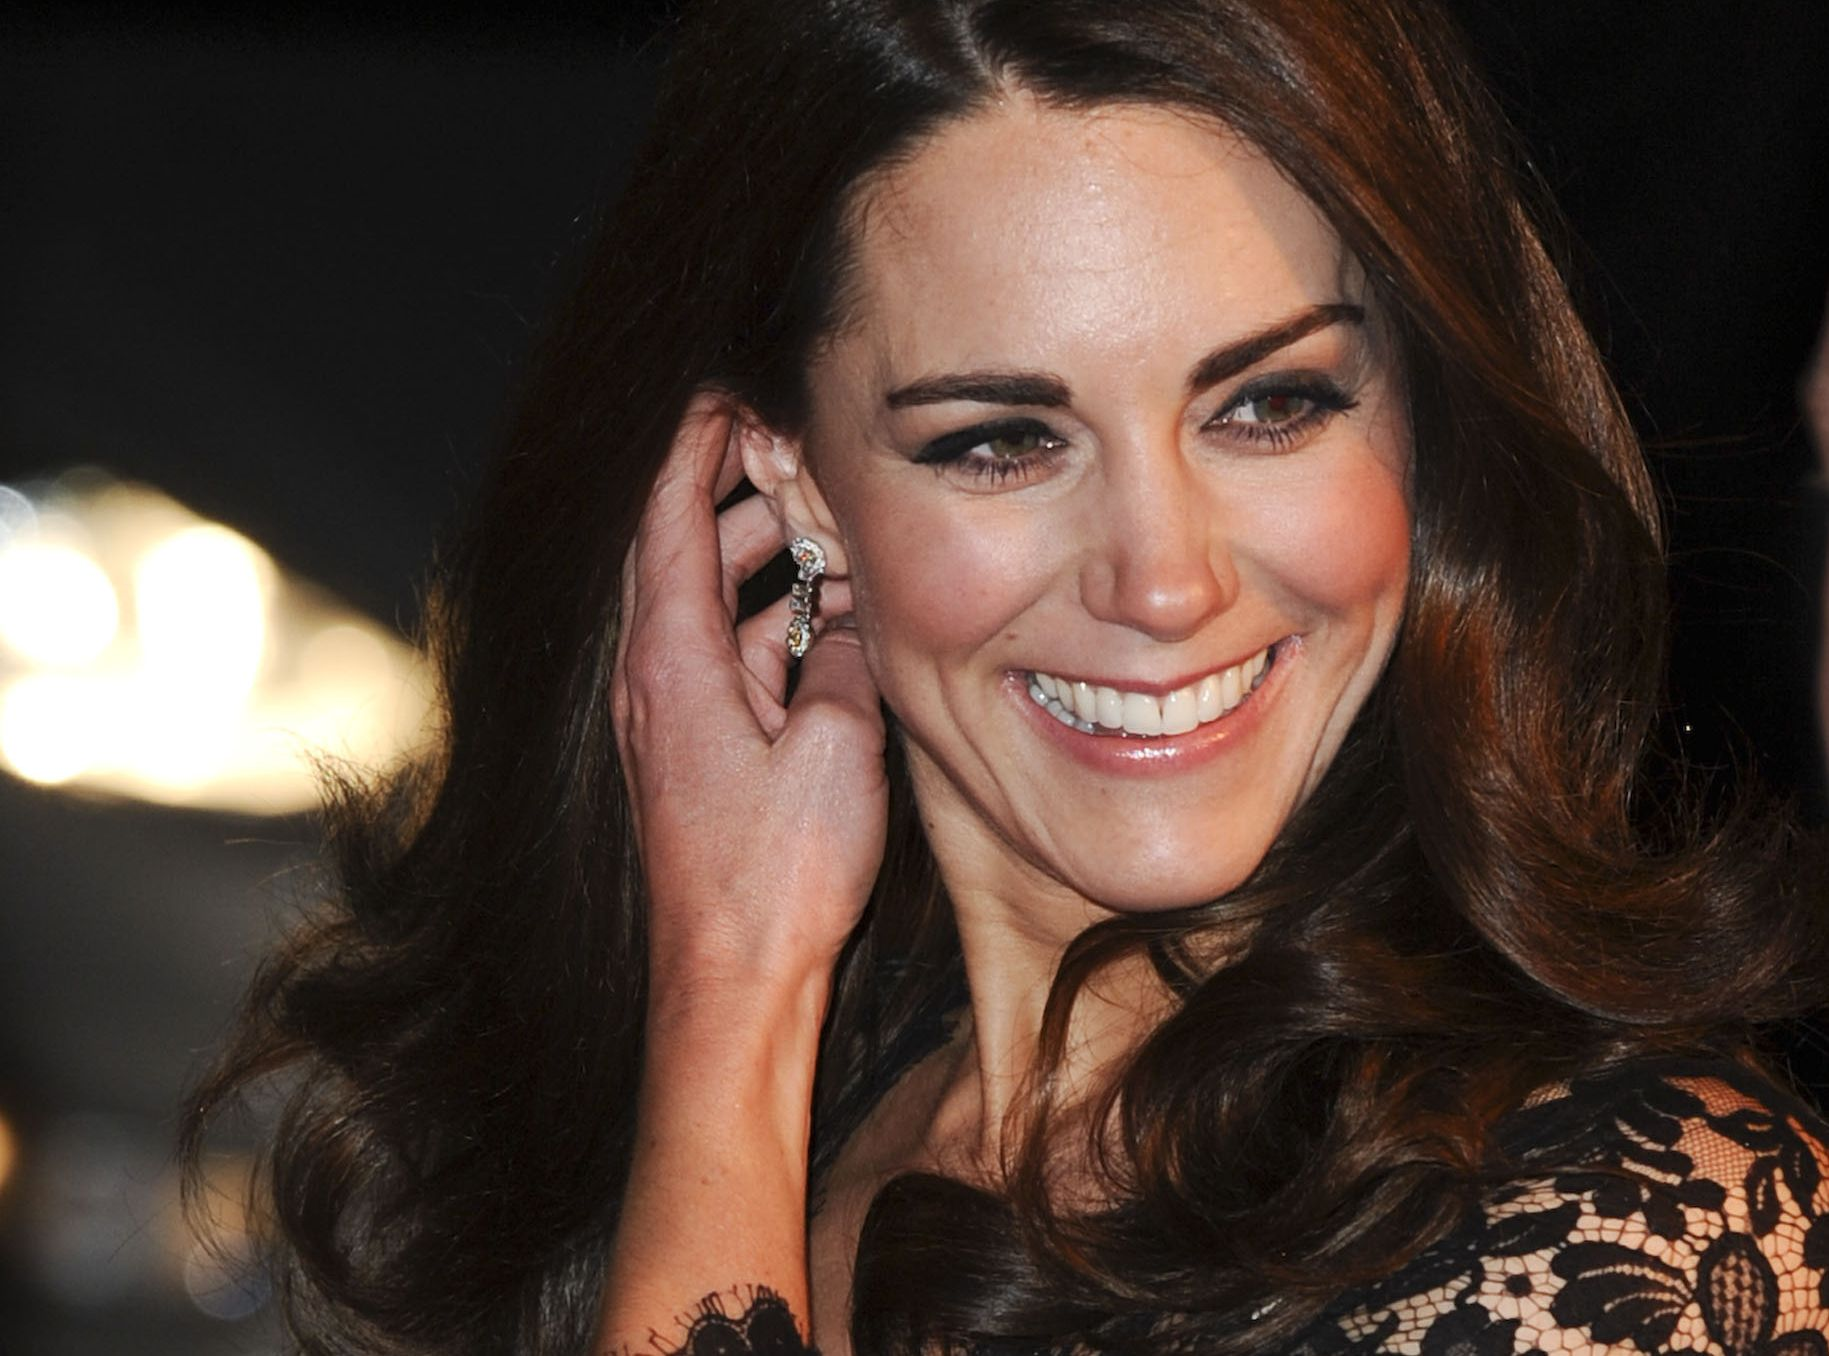 13. Kate Middleton